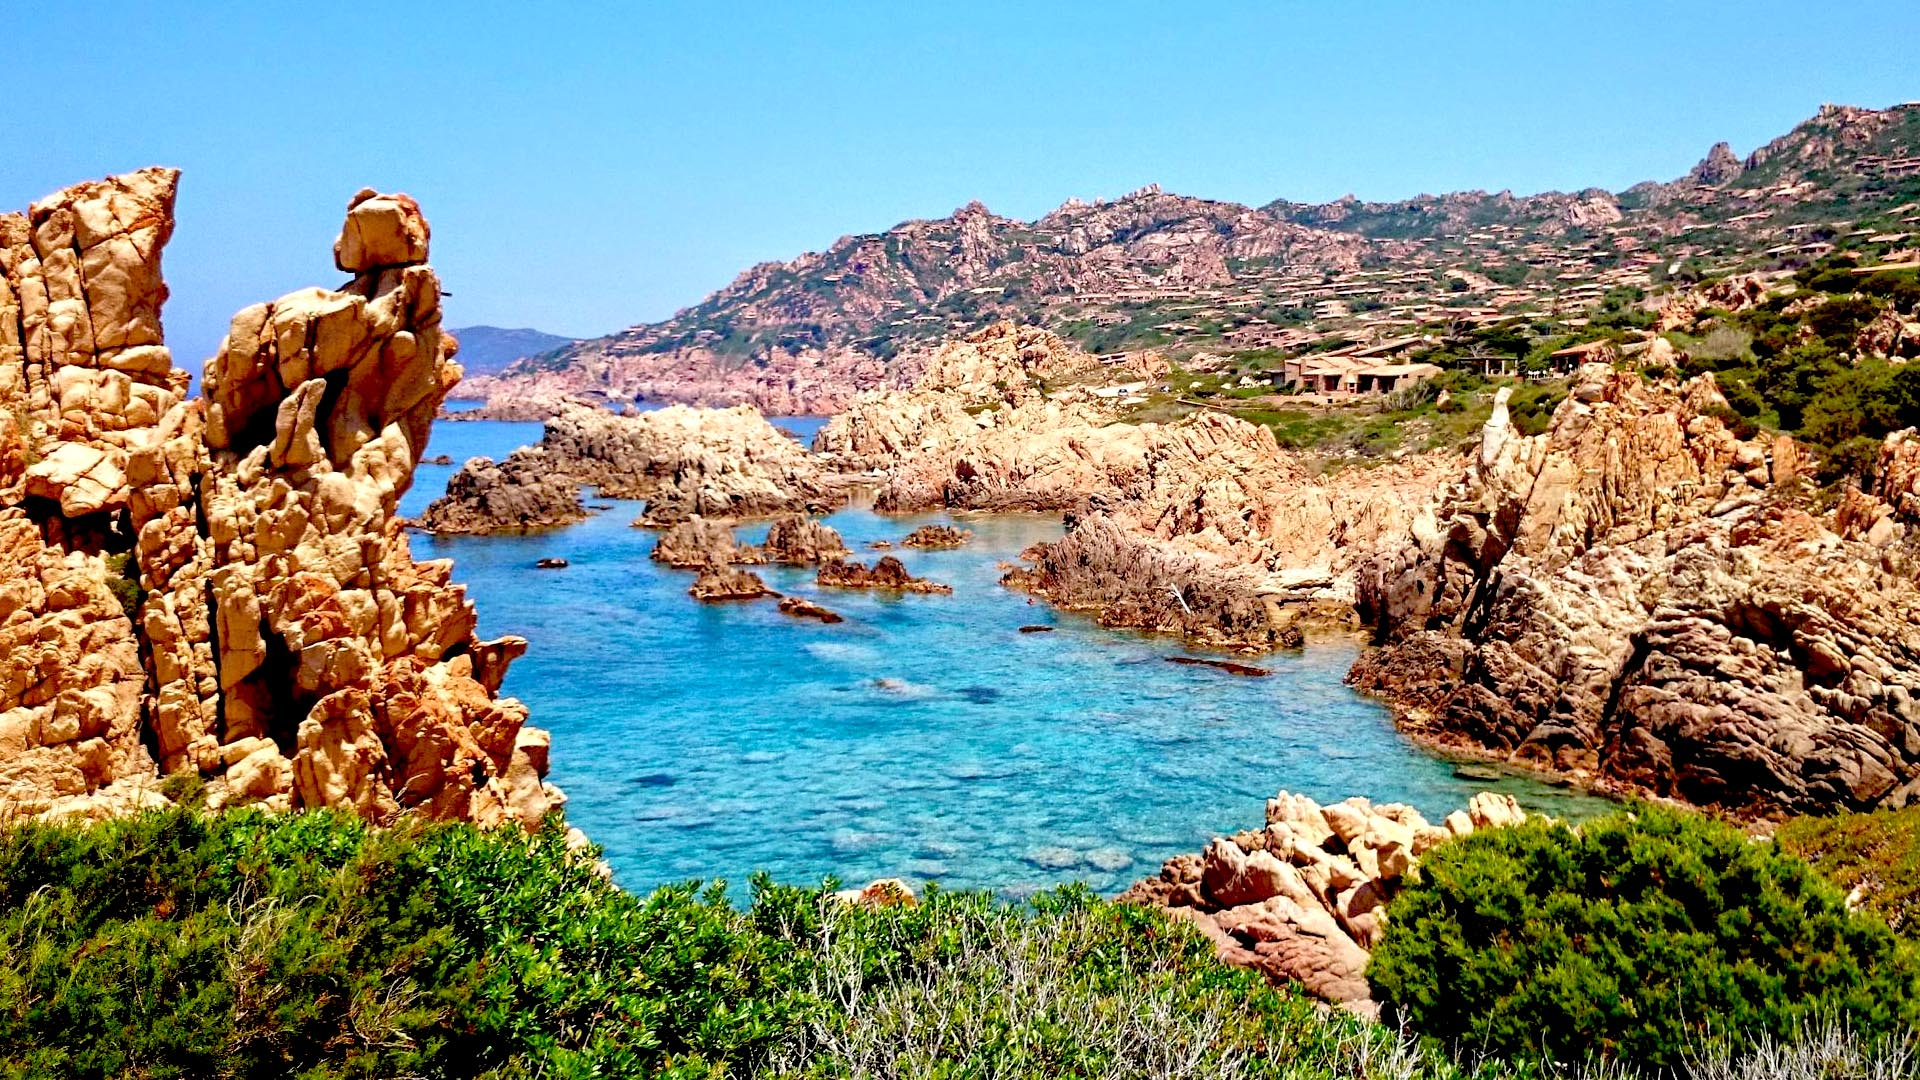 Pin Mare-sardegna on Pinterest